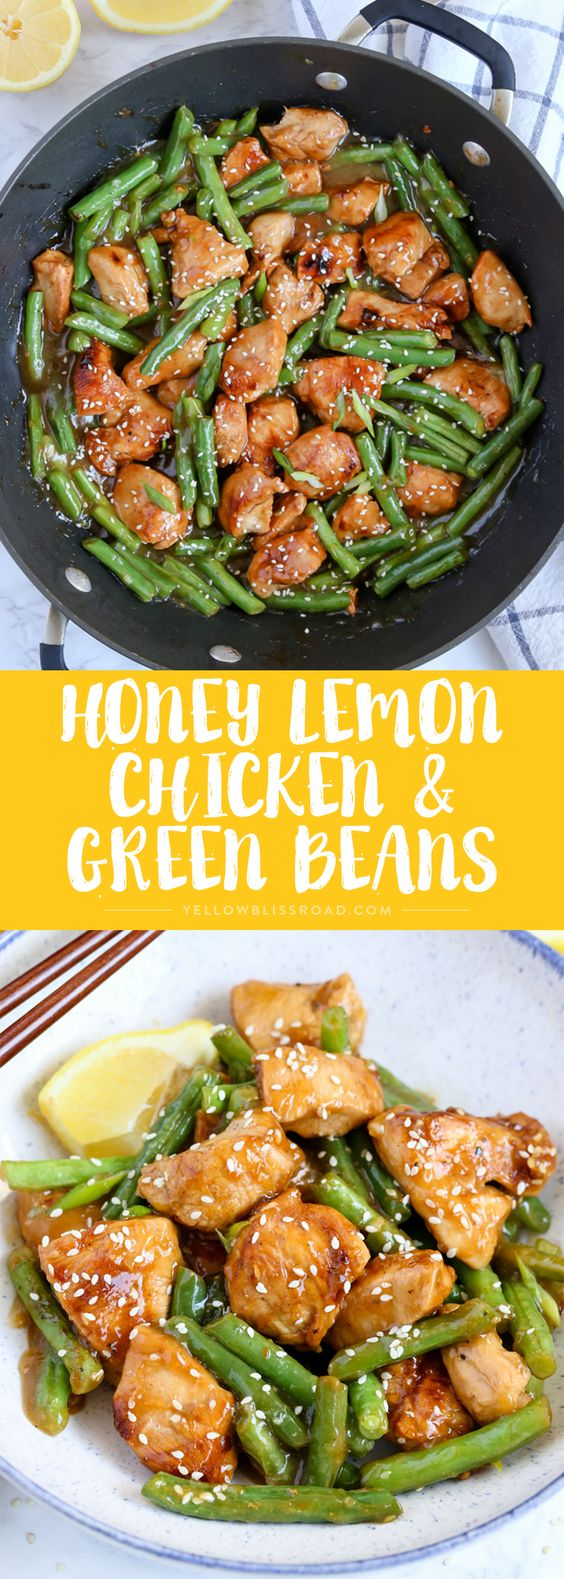 Honey Lemon Chicken and Green Beans - Healthy Recipes